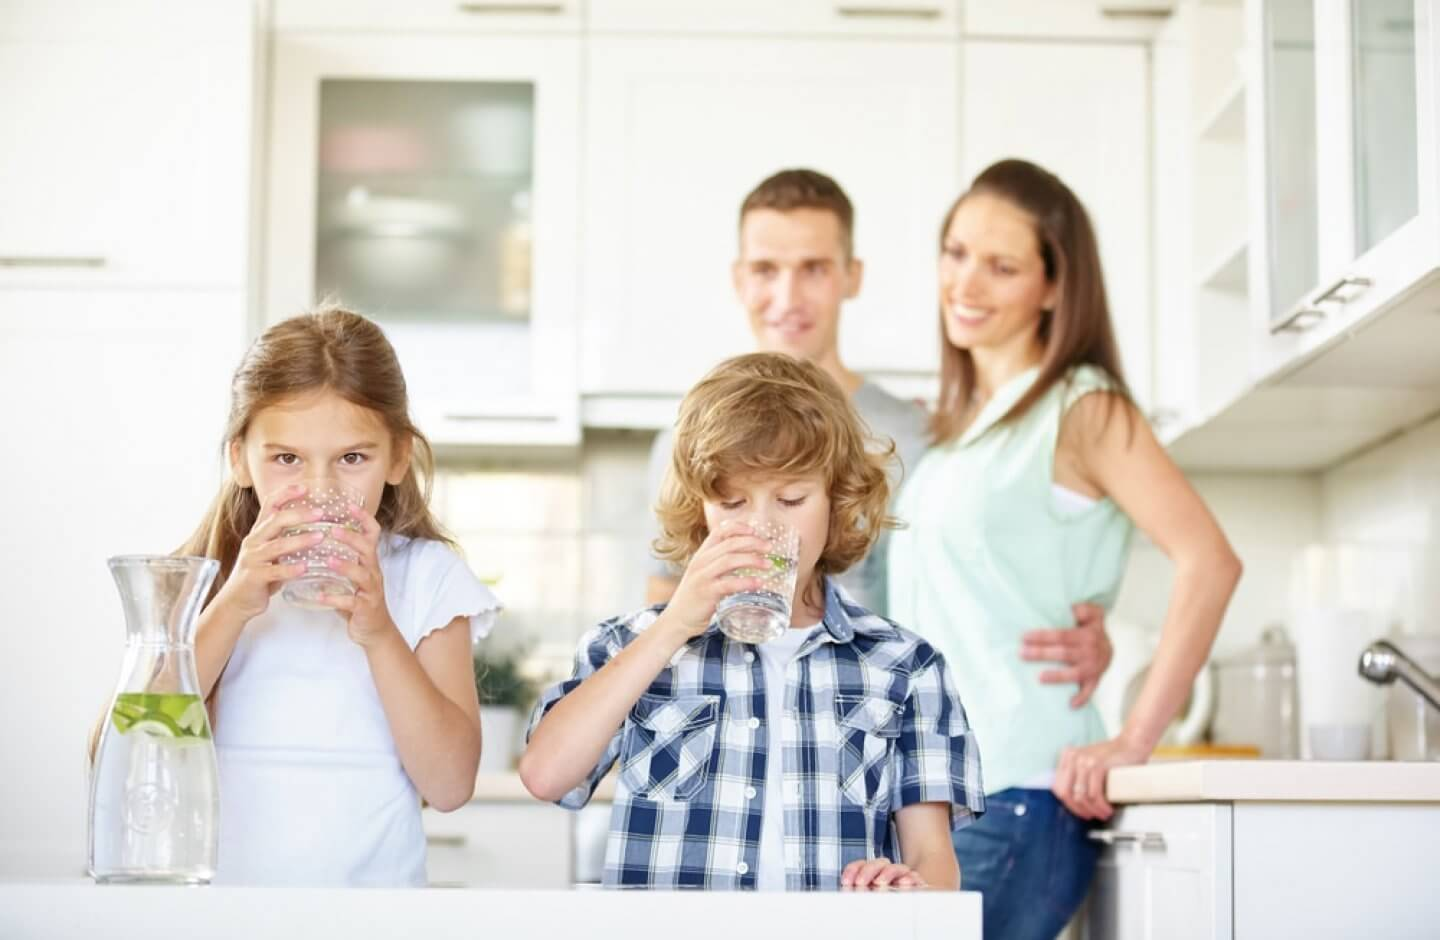 Children enjoy clean, better-tasting water from whole house water filtration system